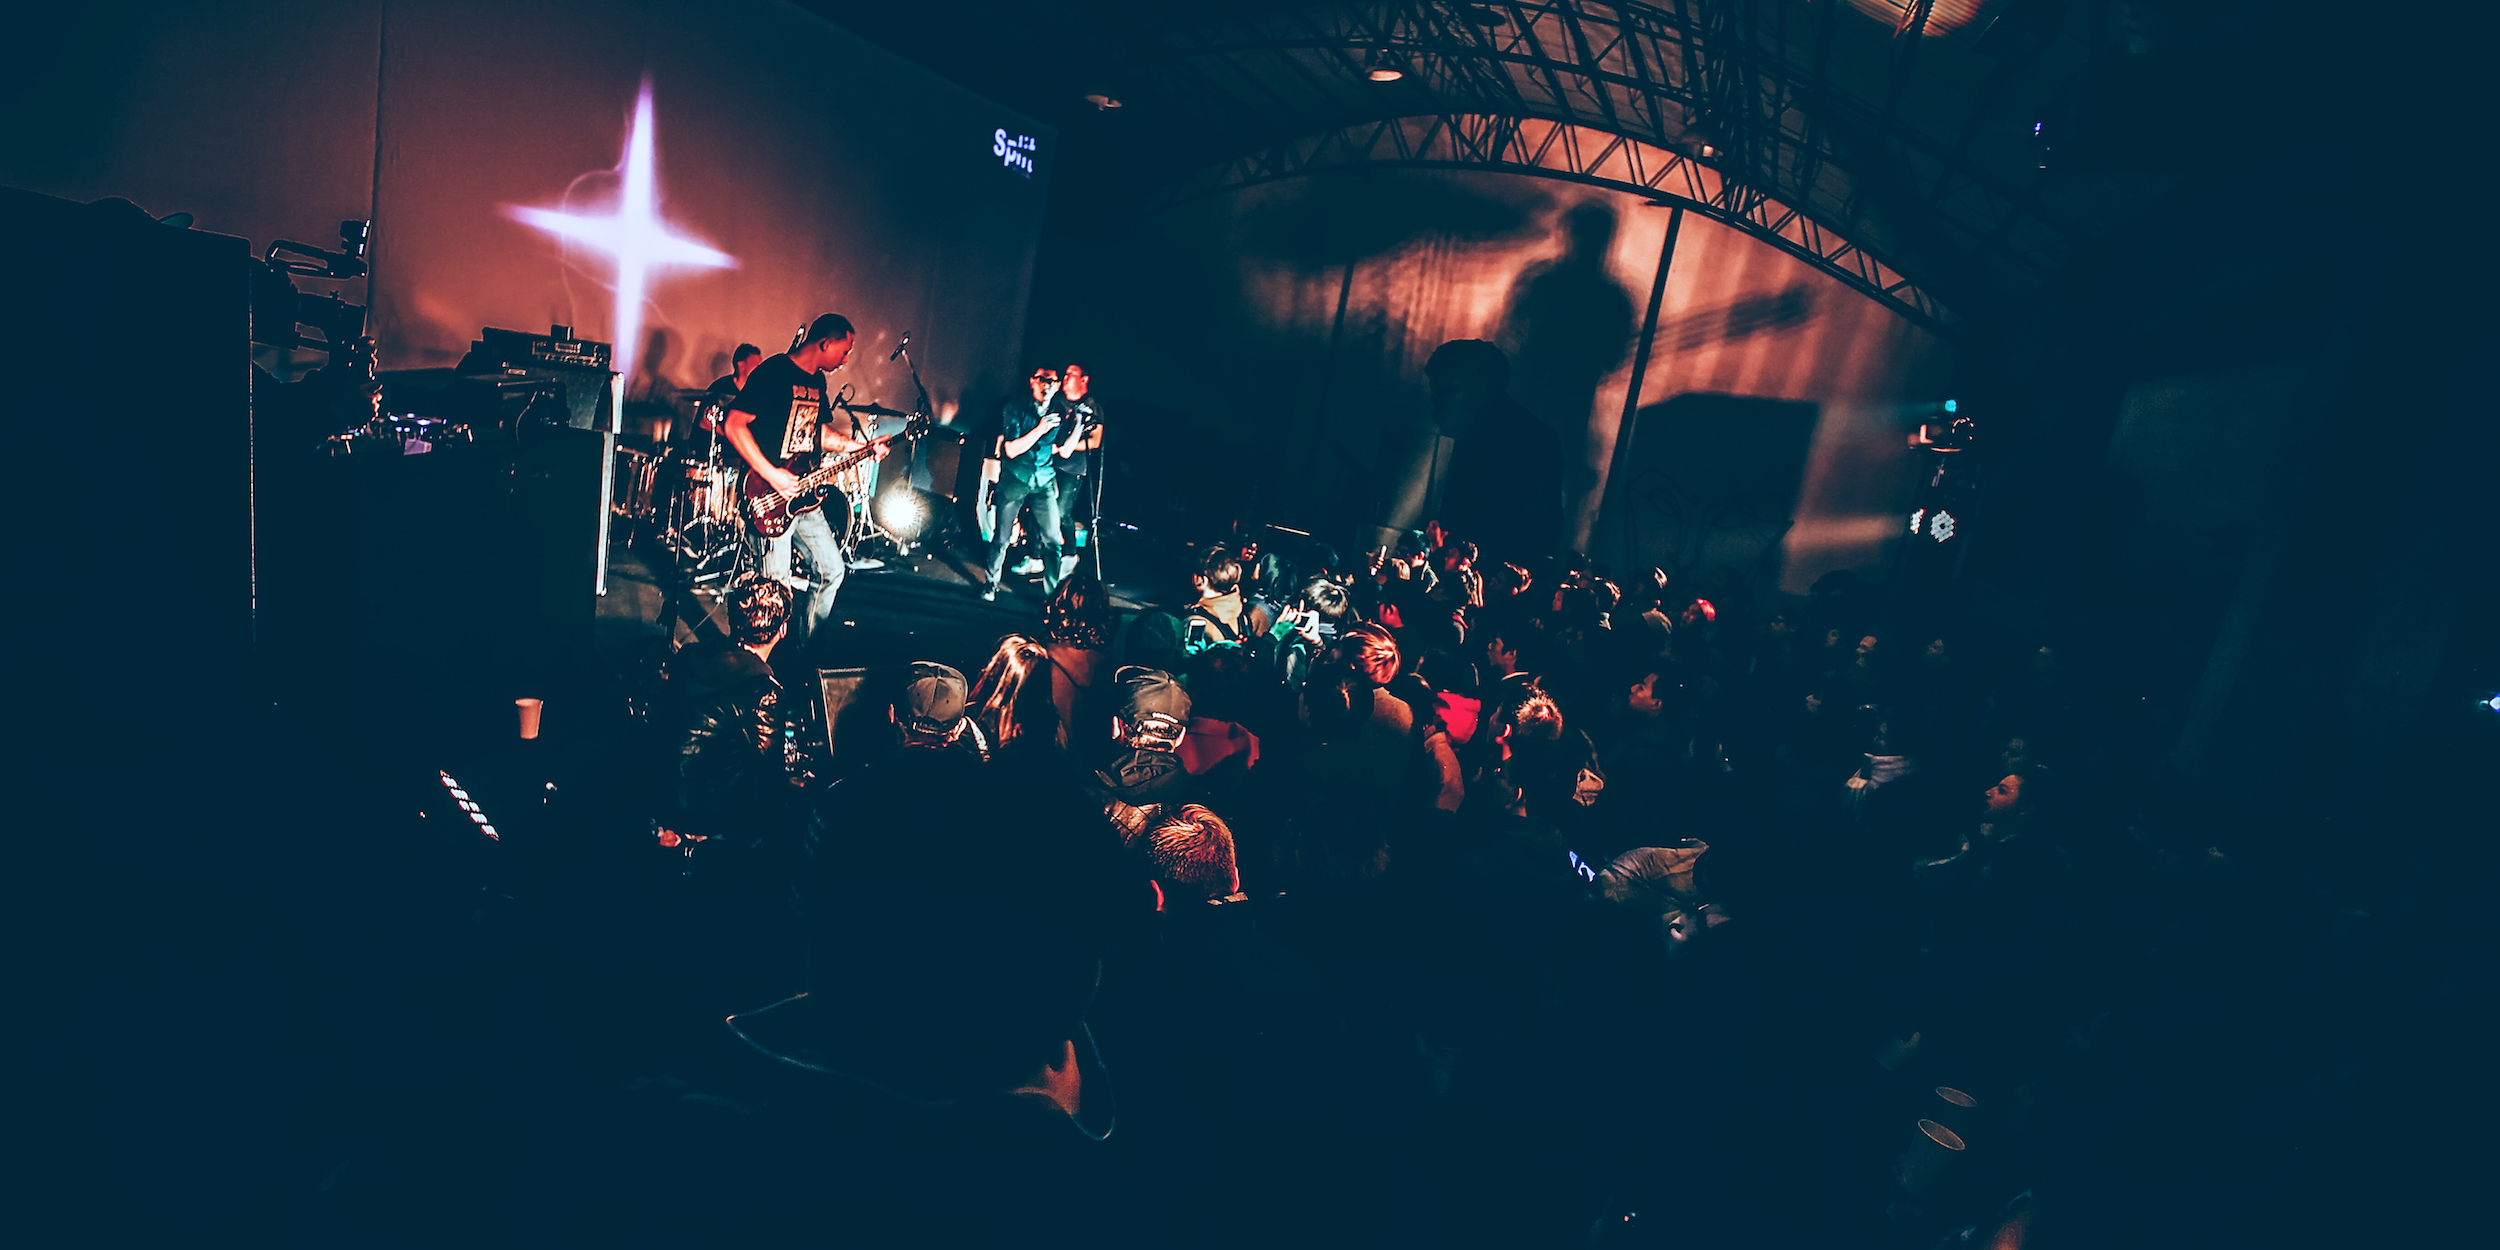 In Pictures: The #Split10 Warehouse Party